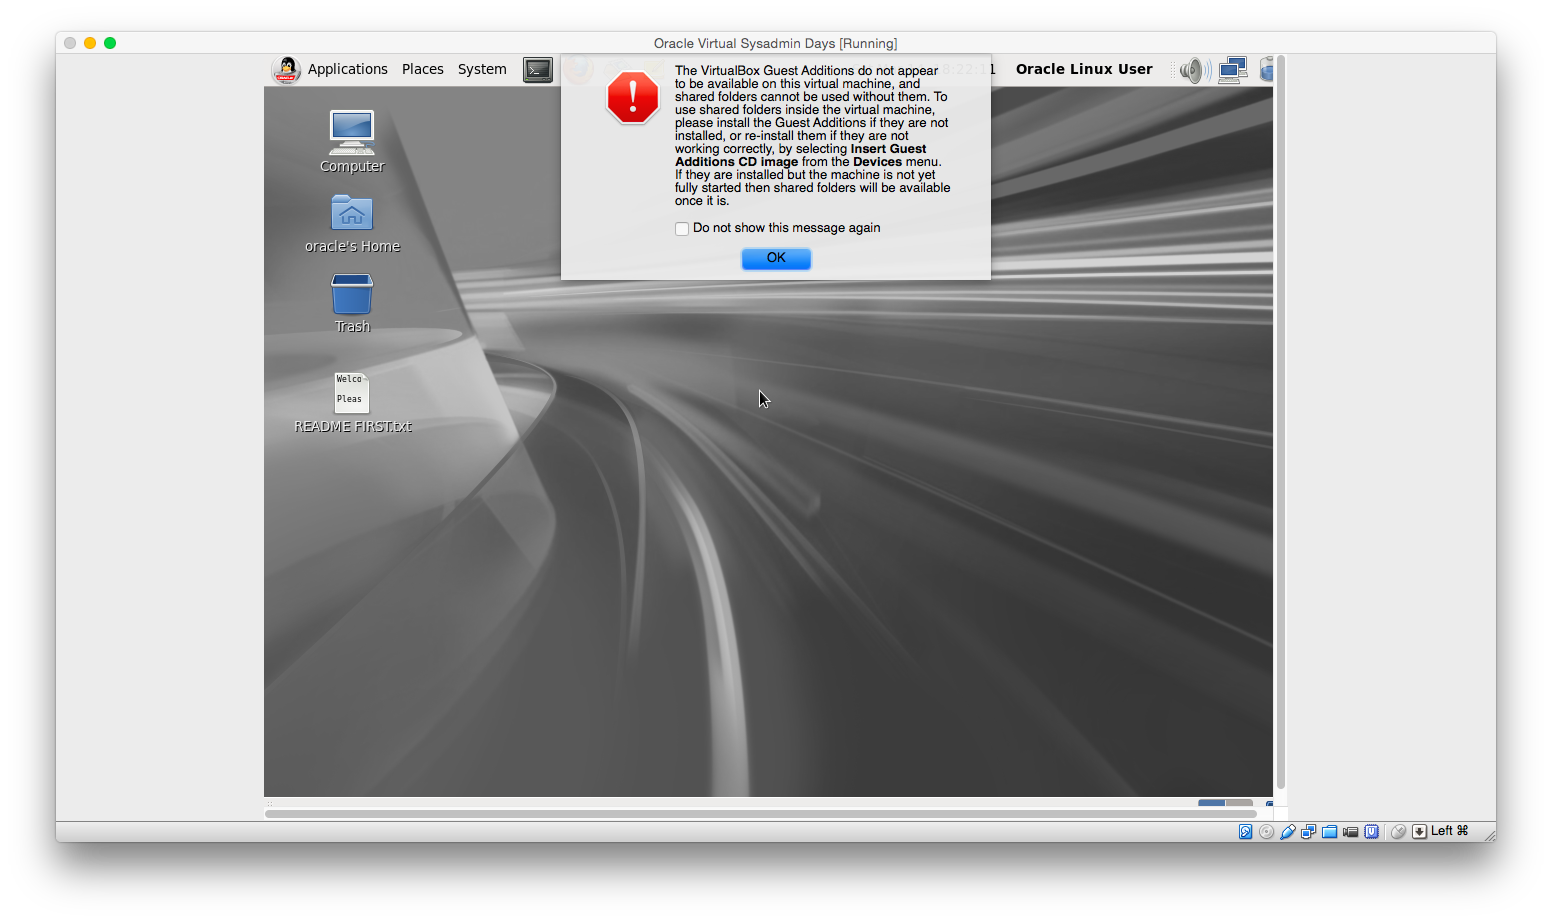 Oracle_Linux OS on Oracle VirtualBox on my Mac OS X